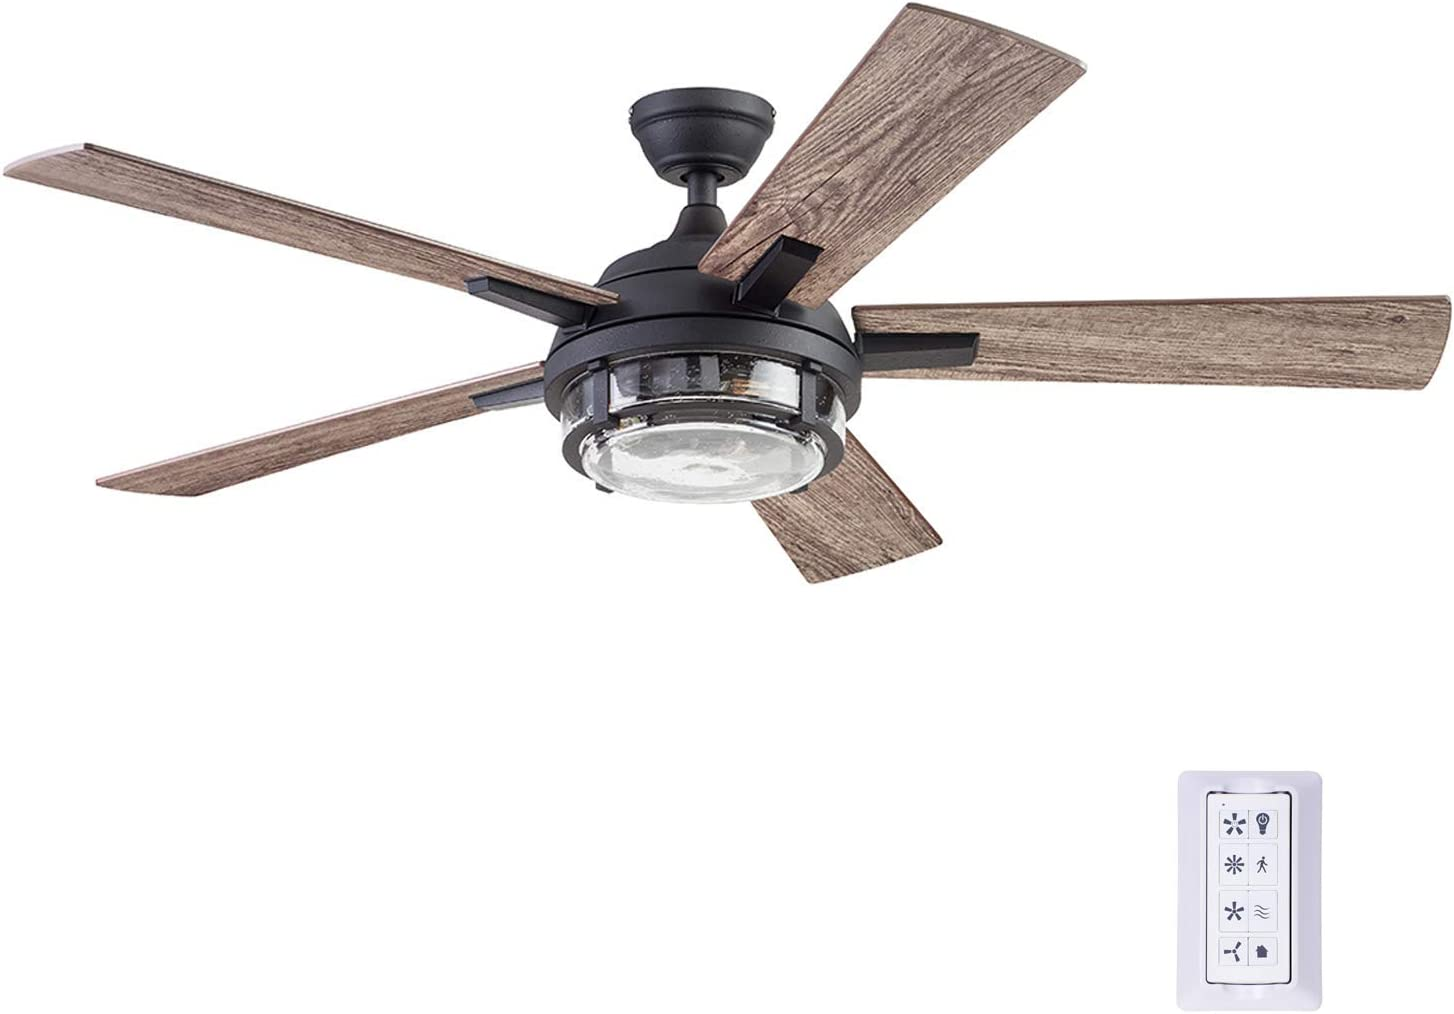 Prominence Home 51484-01 Freyr Ceiling Fan, 52, Heavy Textured Black